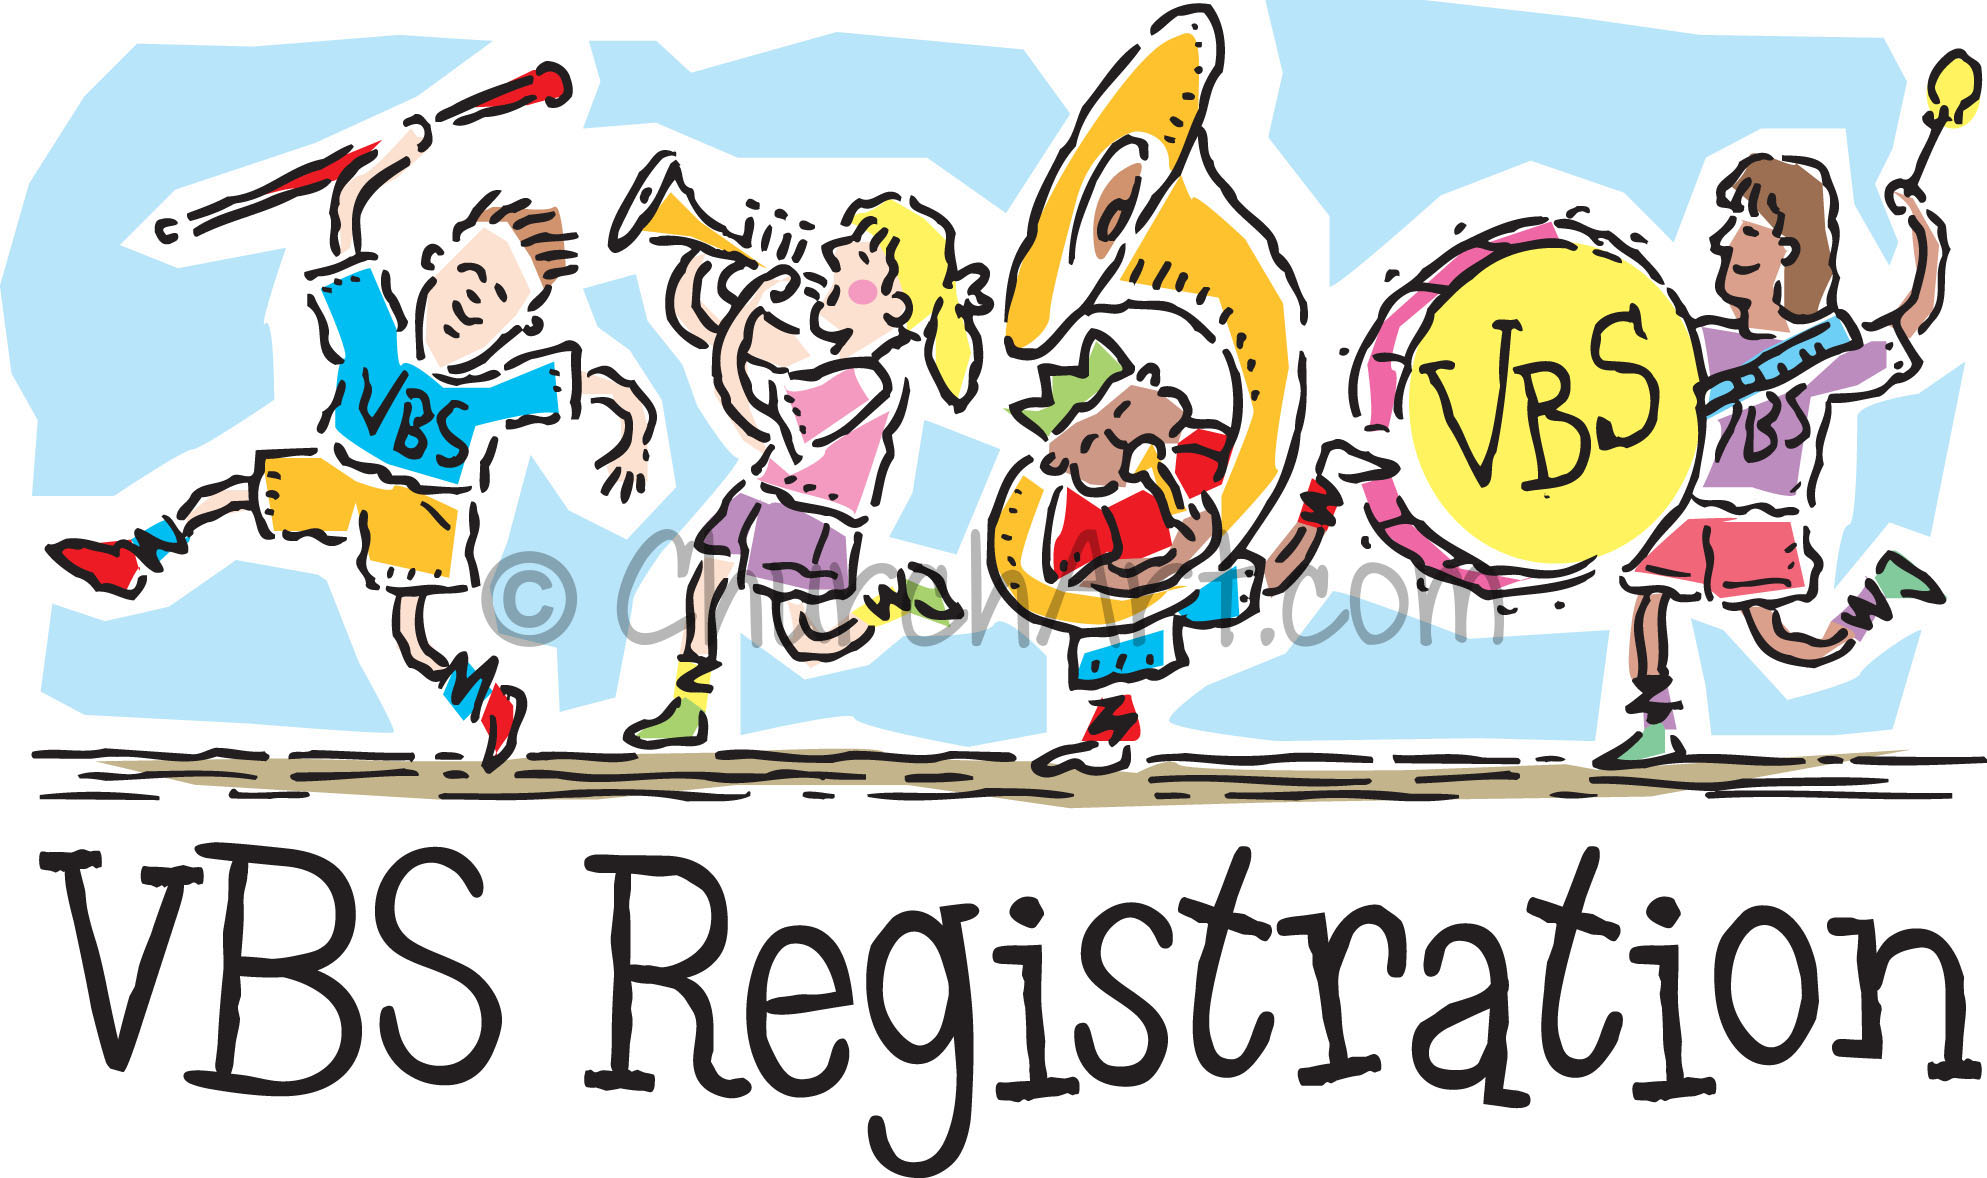 Vacation Bible School Clip-Art with children carrying musical instruments marching in a parade and VBS REGISTRATION caption